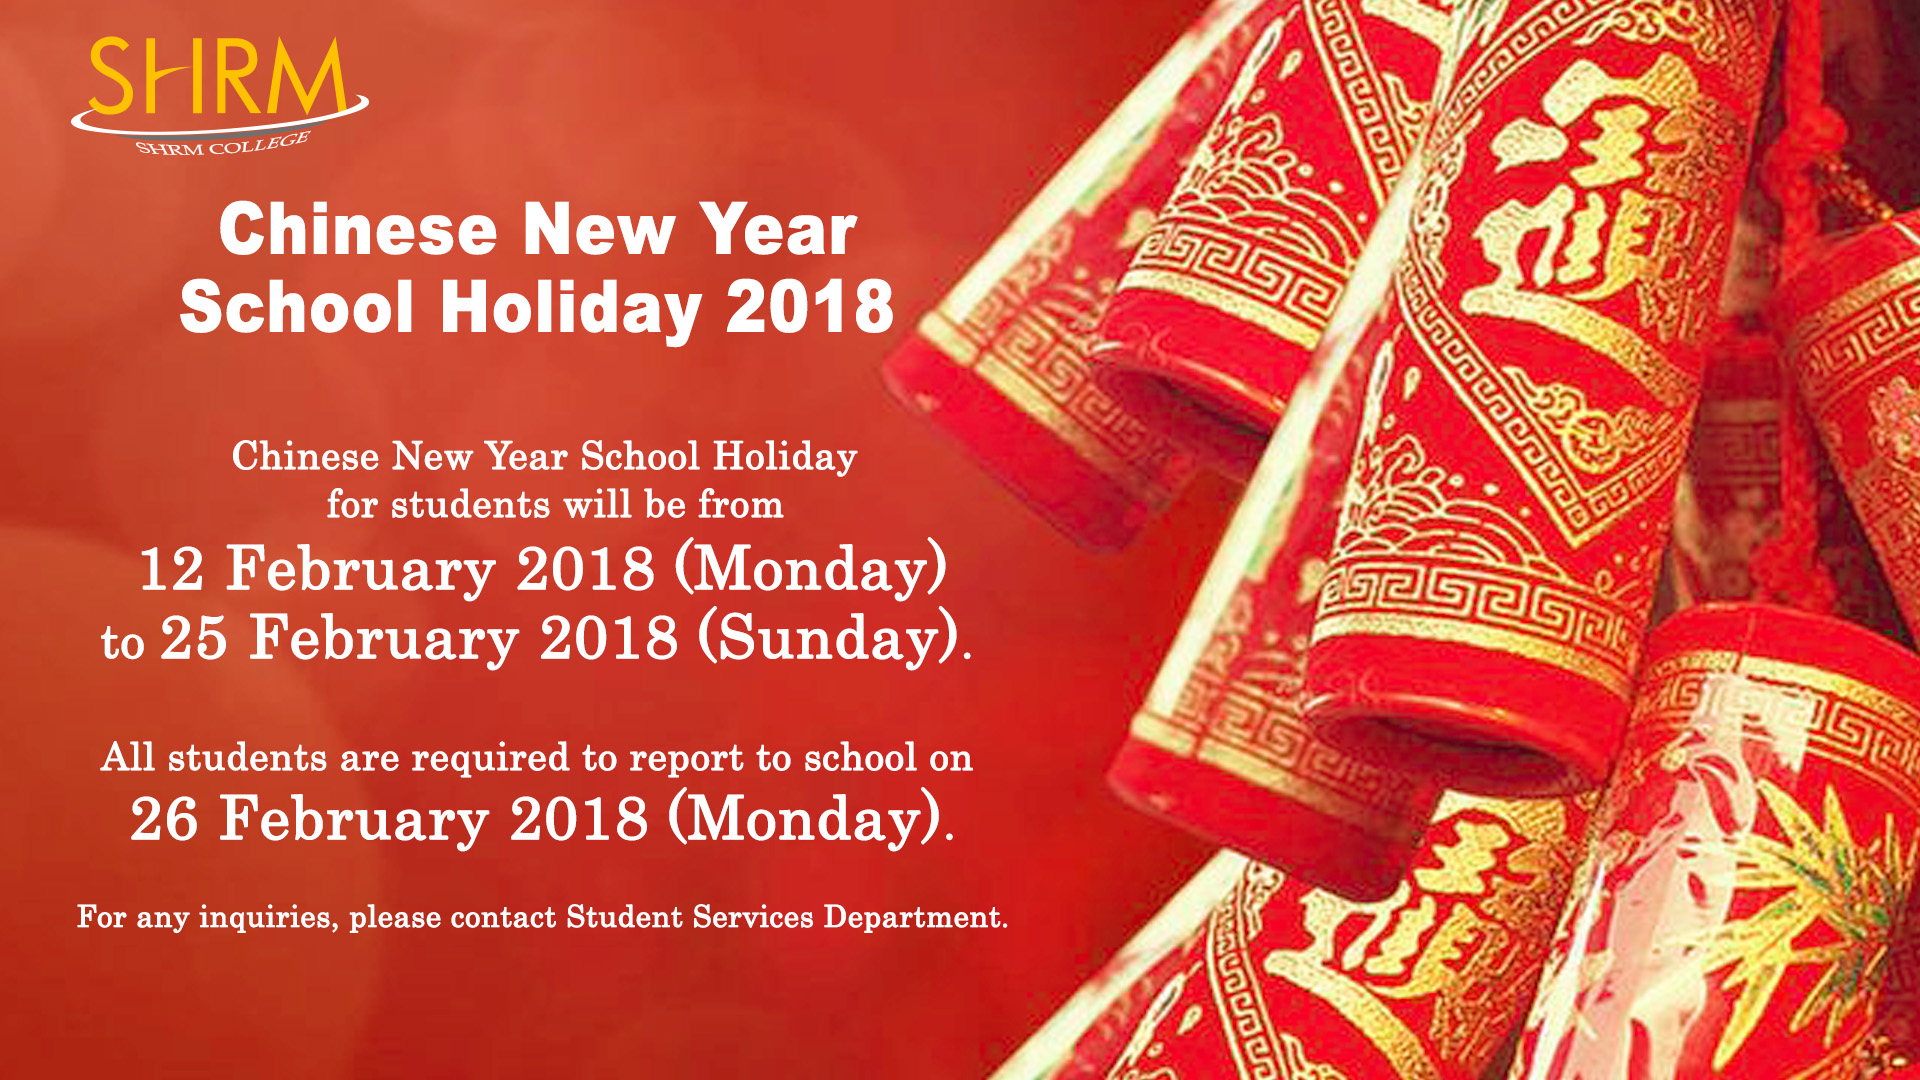 cny school holiday poster 2018 - Chinese New Year Holiday